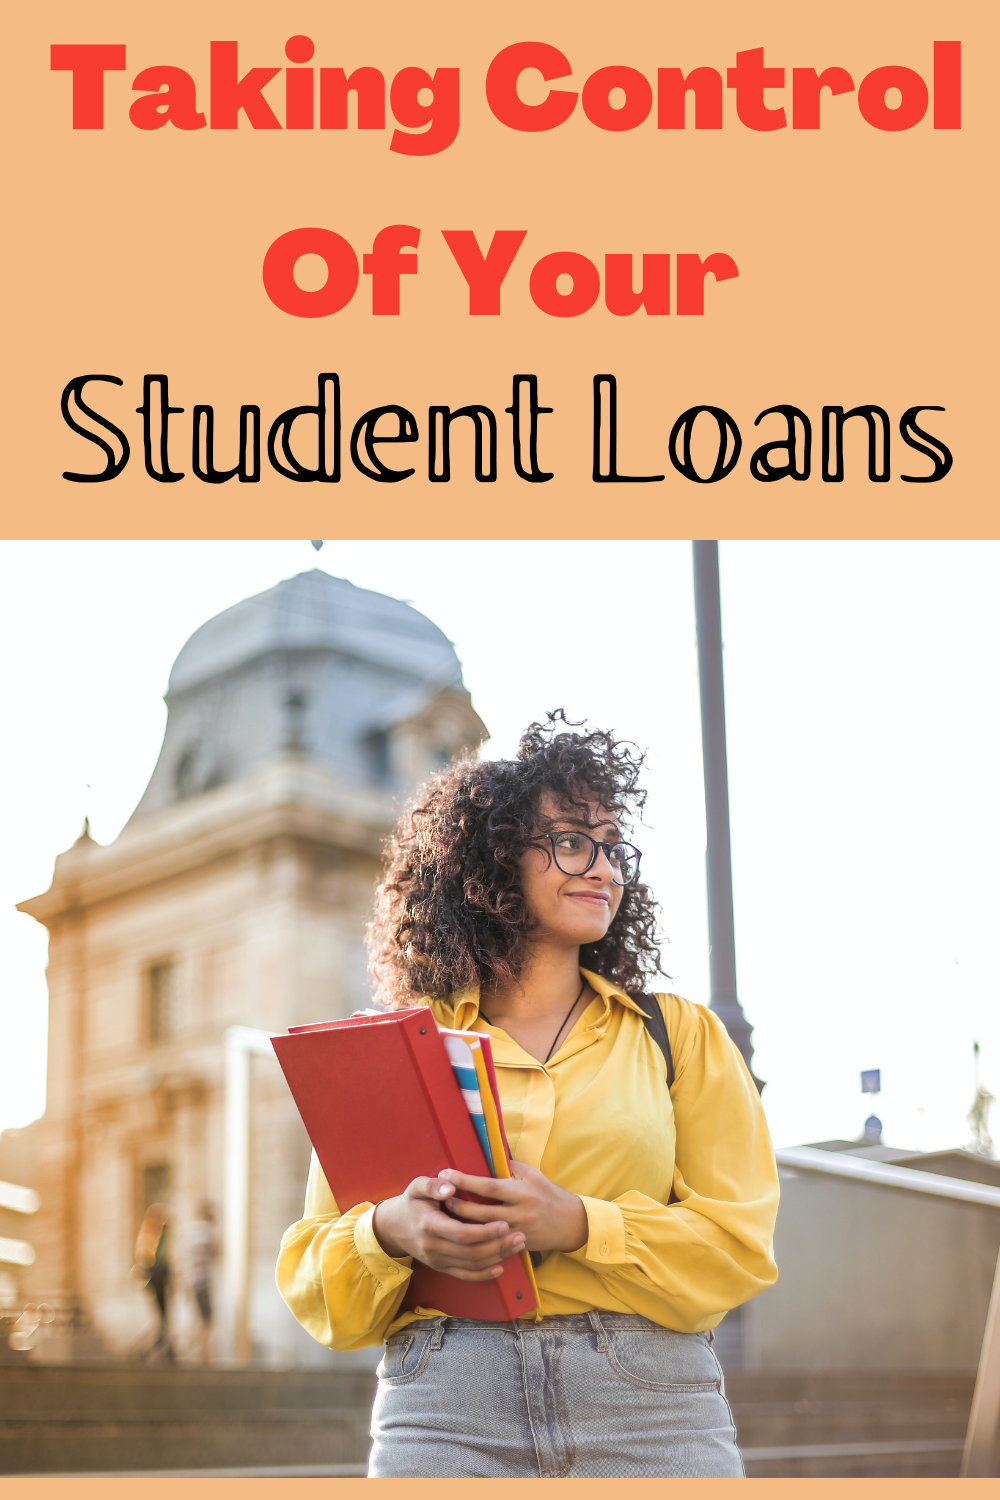 Taking Control Of Your Student Loans In 2020 Student Loans Student Personal Finance Blogs